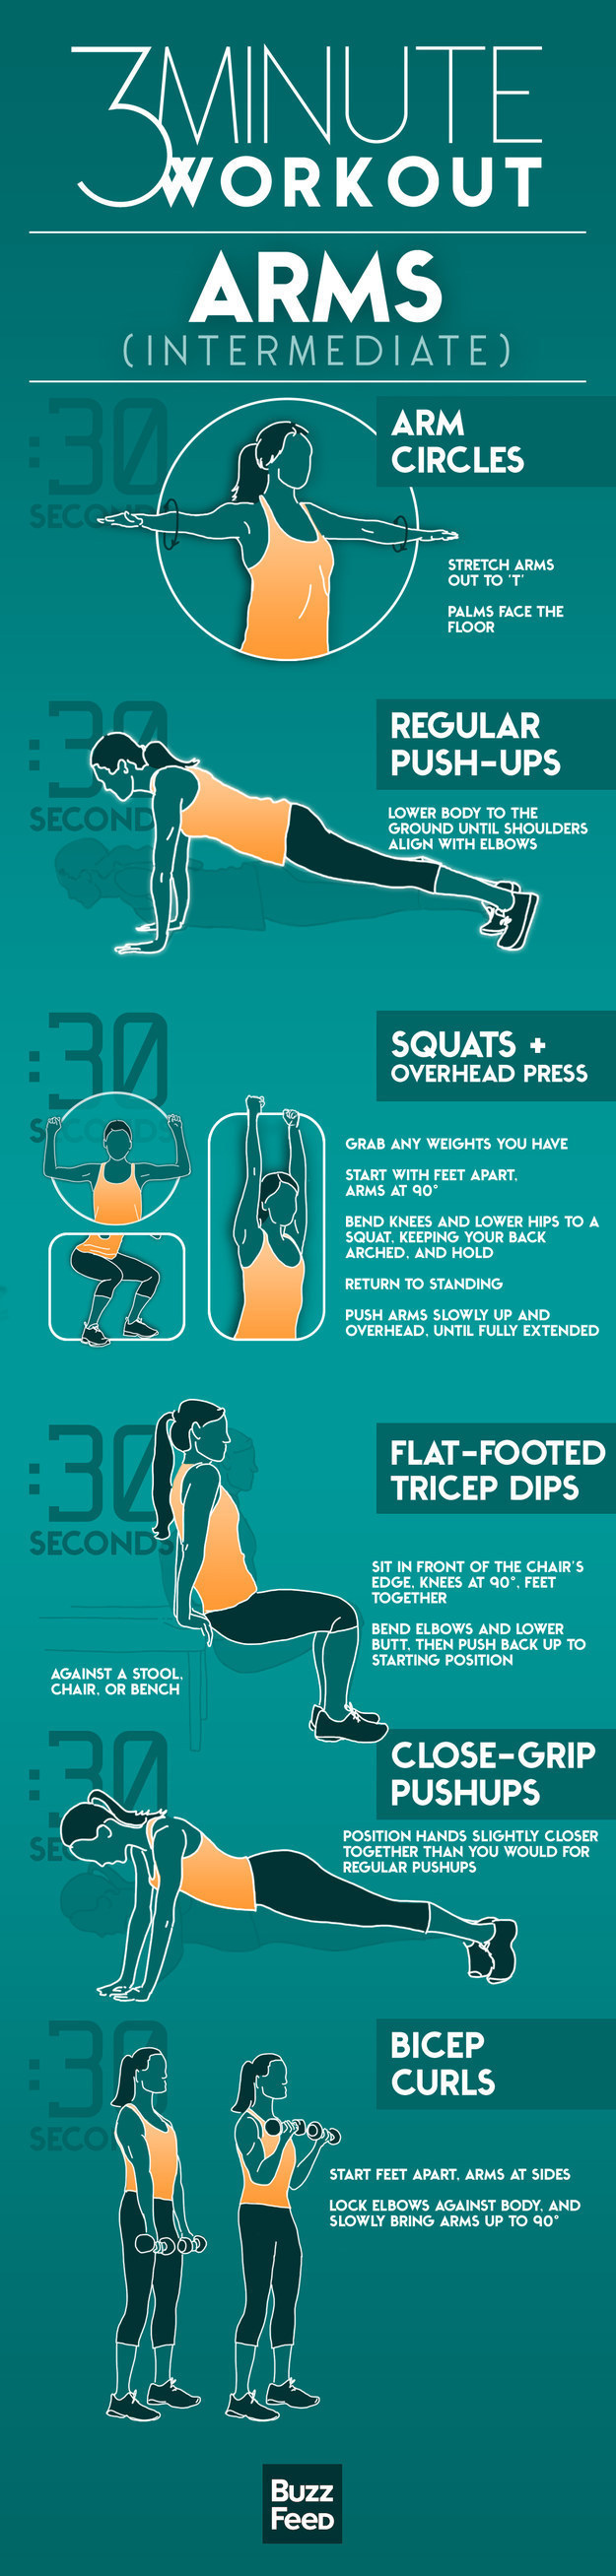 quick arms workout